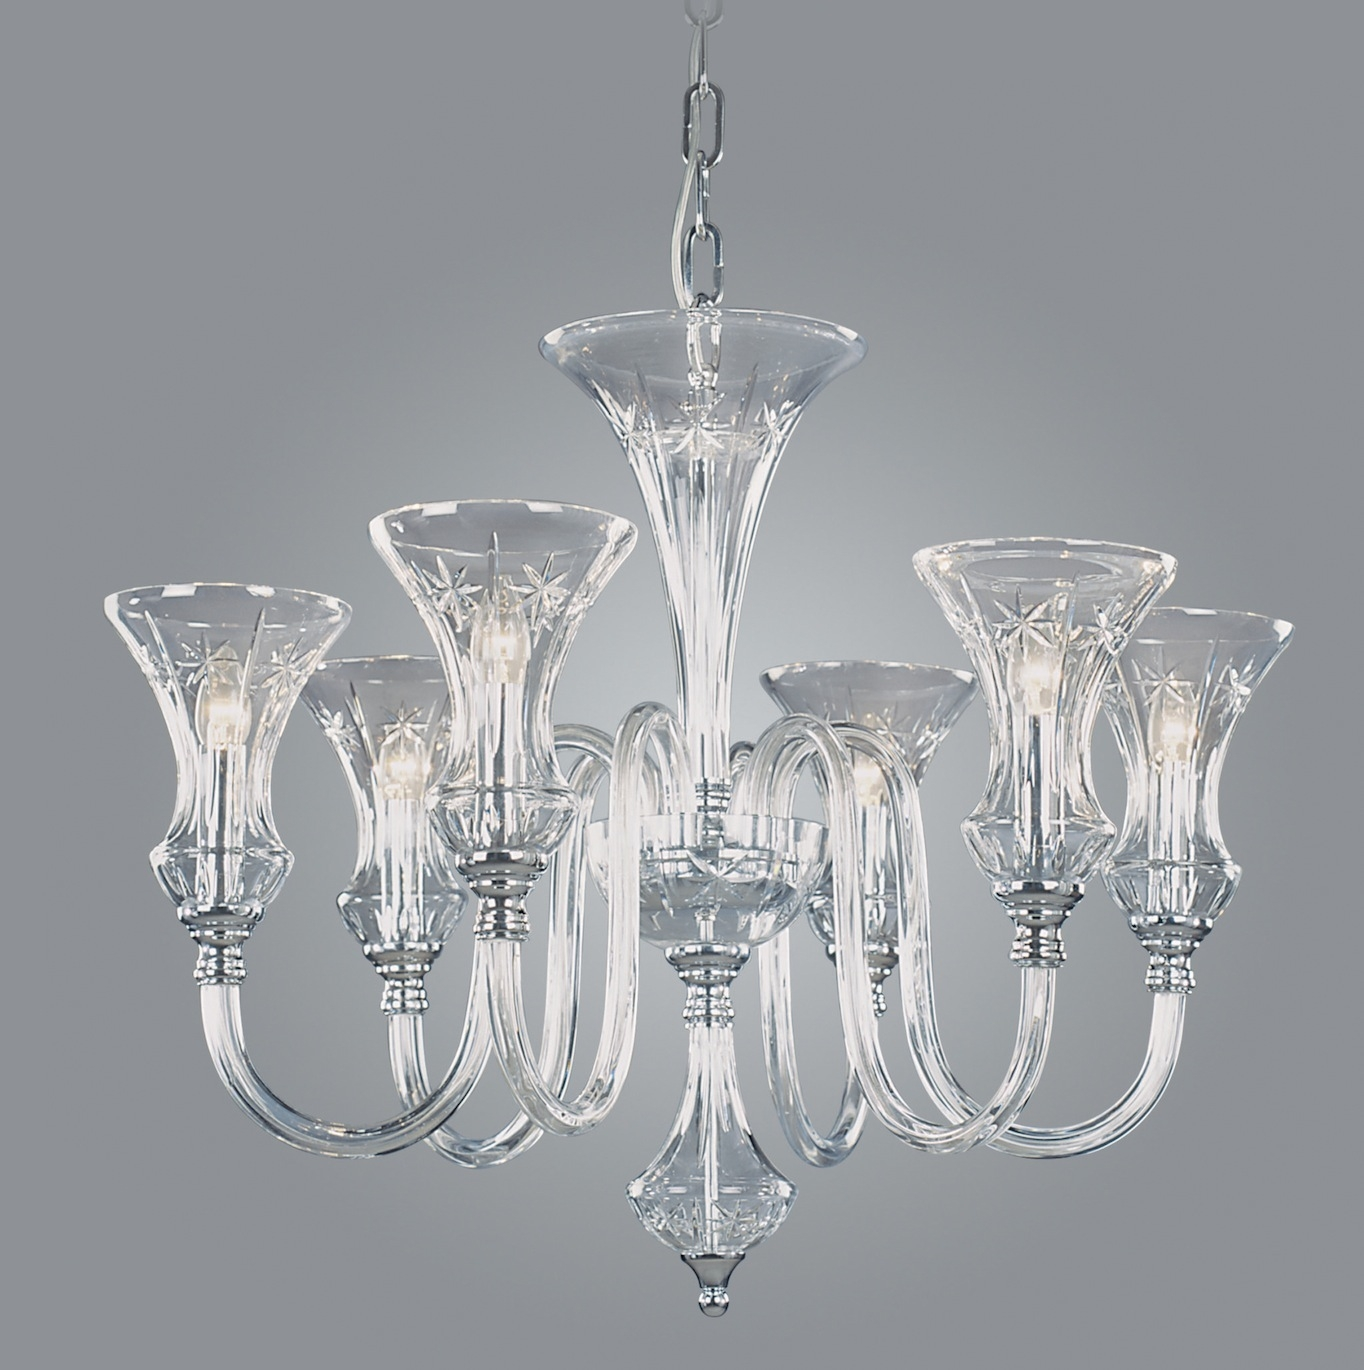 Amazing Glass Chandelier Modern Murano Italian Glass Venetian In Modern Glass Chandeliers (Image 3 of 15)